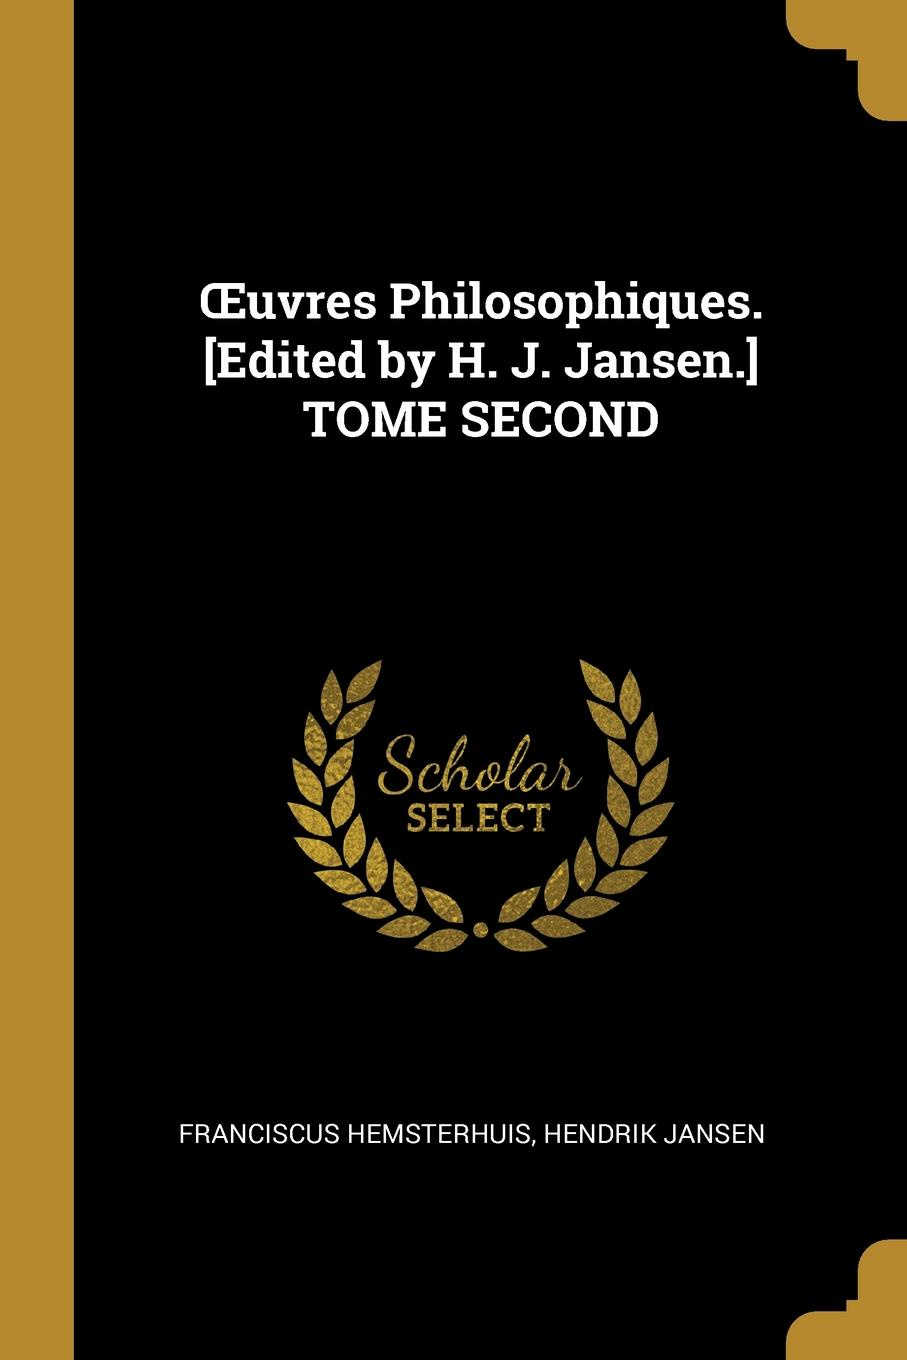 Franciscus Hemsterhuis, Hendrik Jansen OEuvres Philosophiques. .Edited by H. J. Jansen.. TOME SECOND h conway called back collection of british authors vol 2243 in one volume